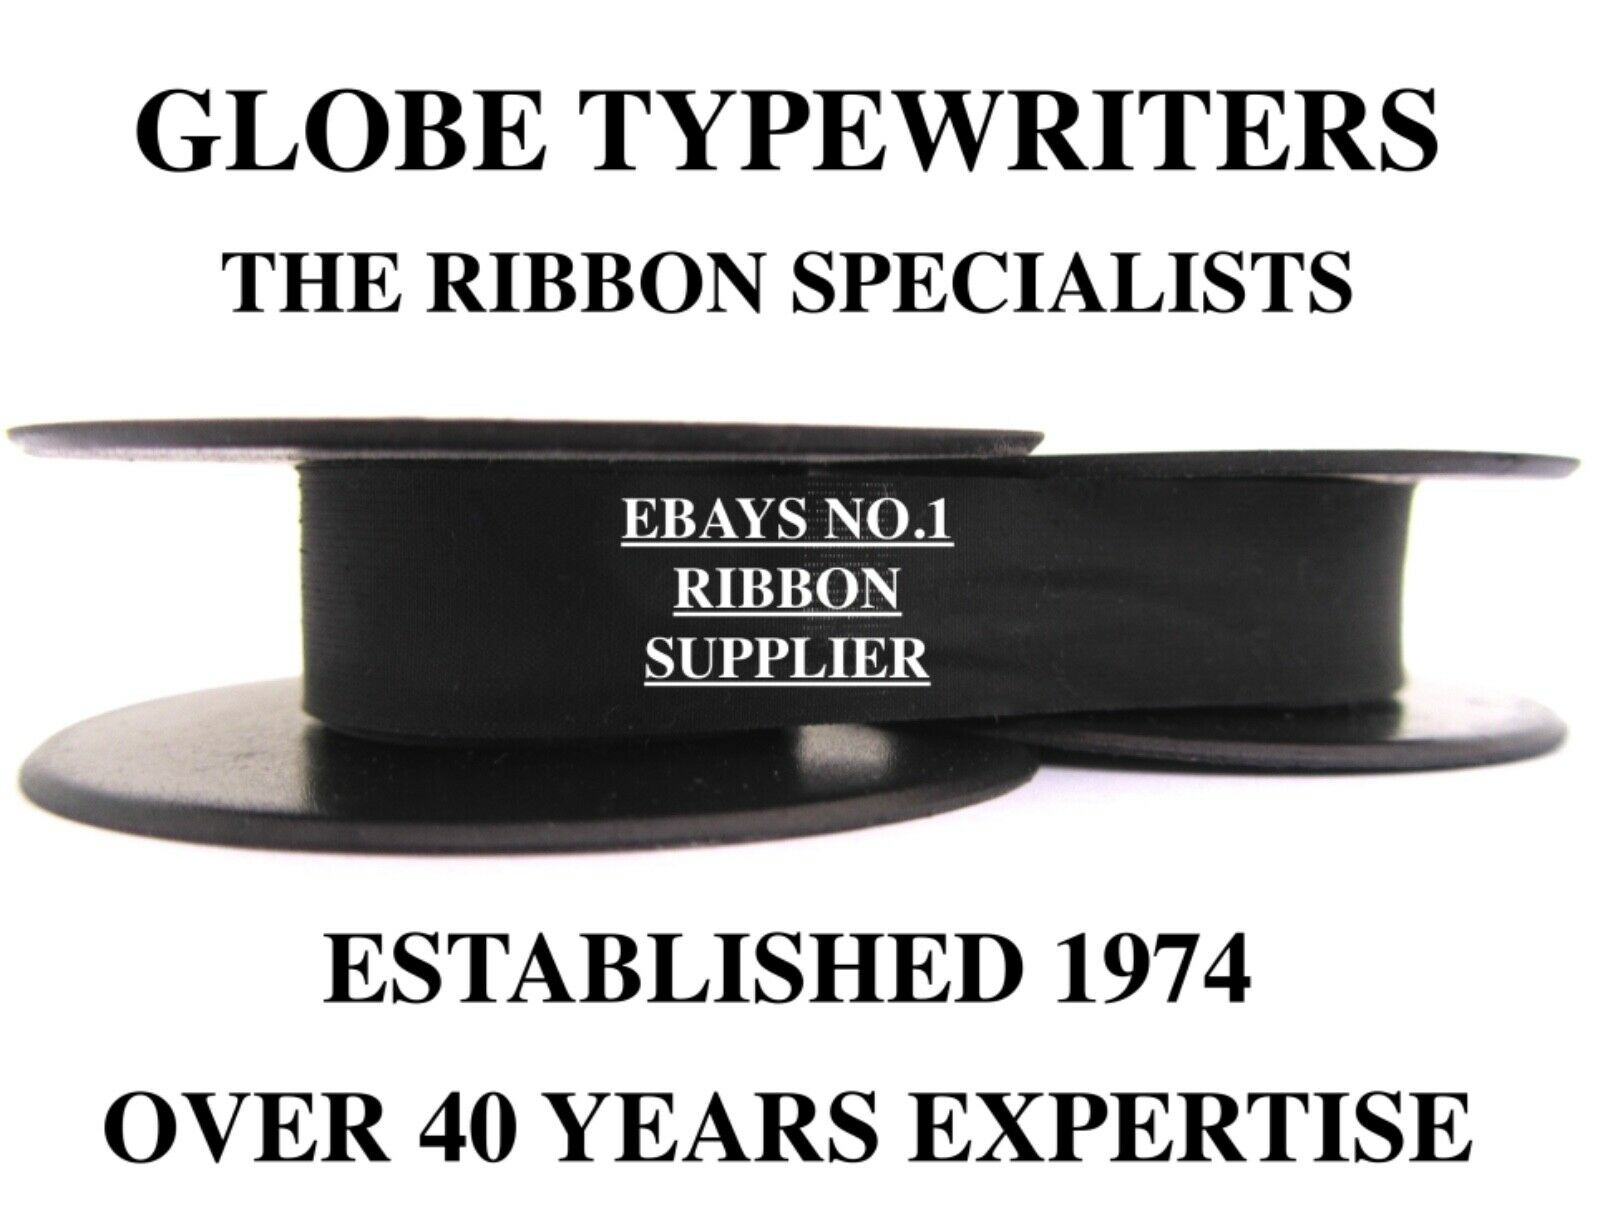 'silver Reed Sovereign 750' *black* Top Quality *10 Metre* Typewriter Ribbon